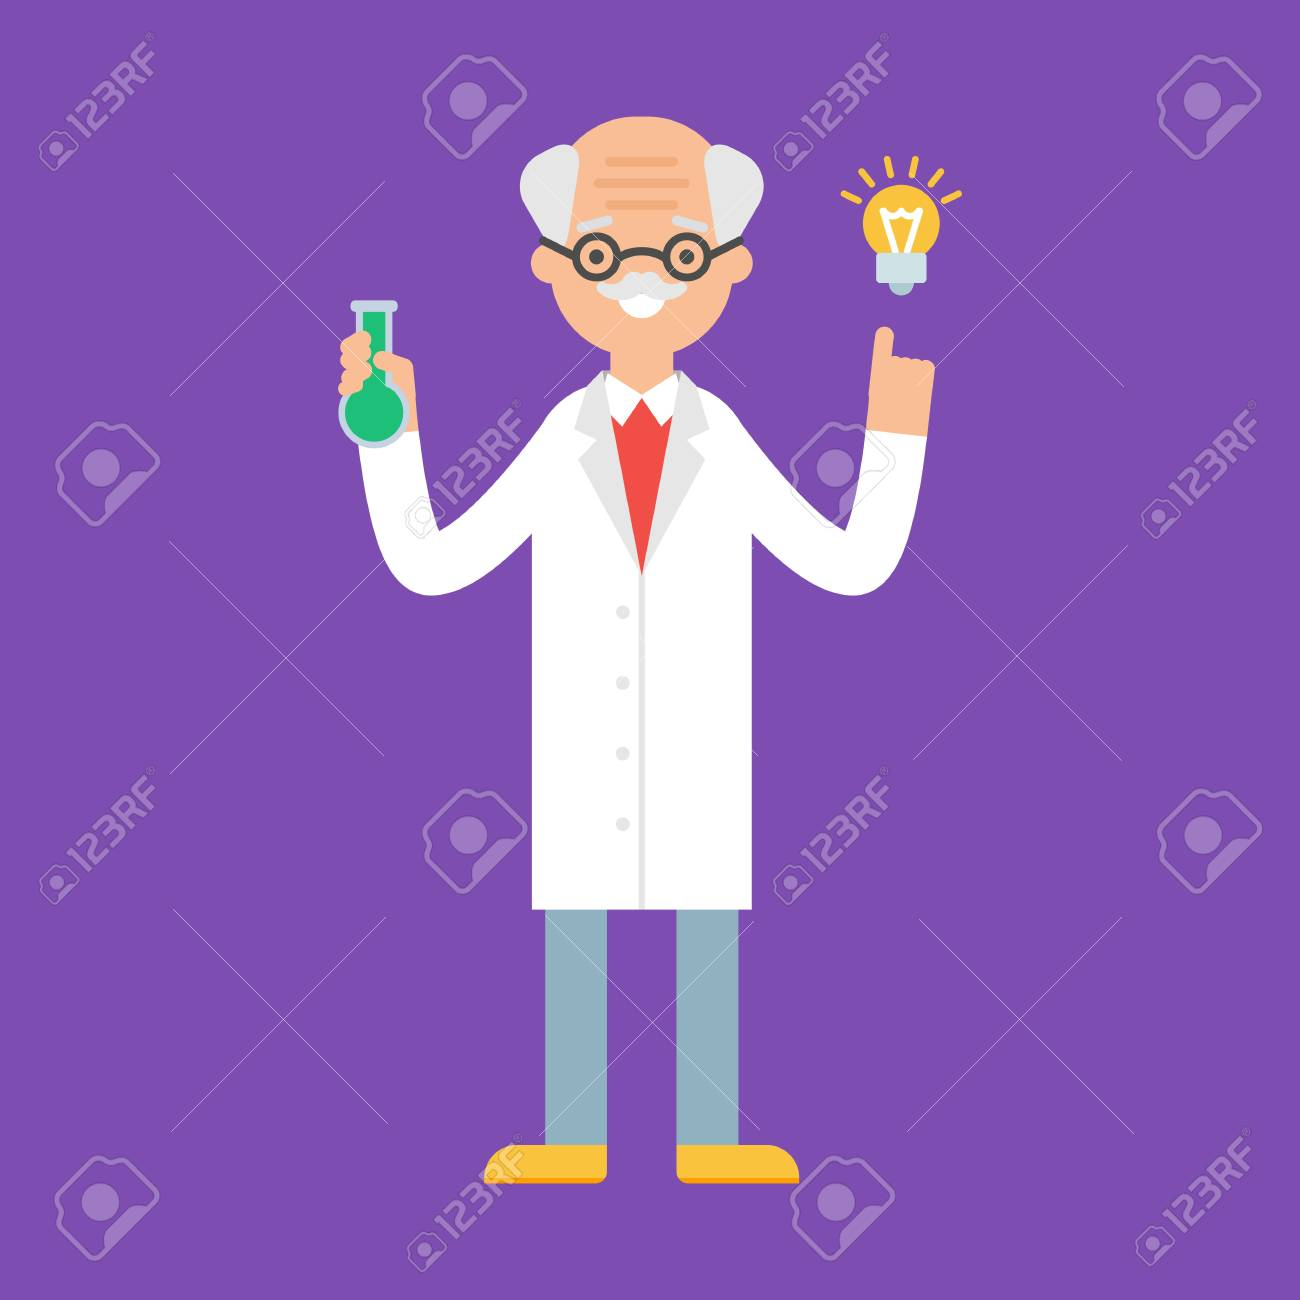 scientist vector illustration royalty free cliparts vectors and stock illustration image 56581708 scientist vector illustration